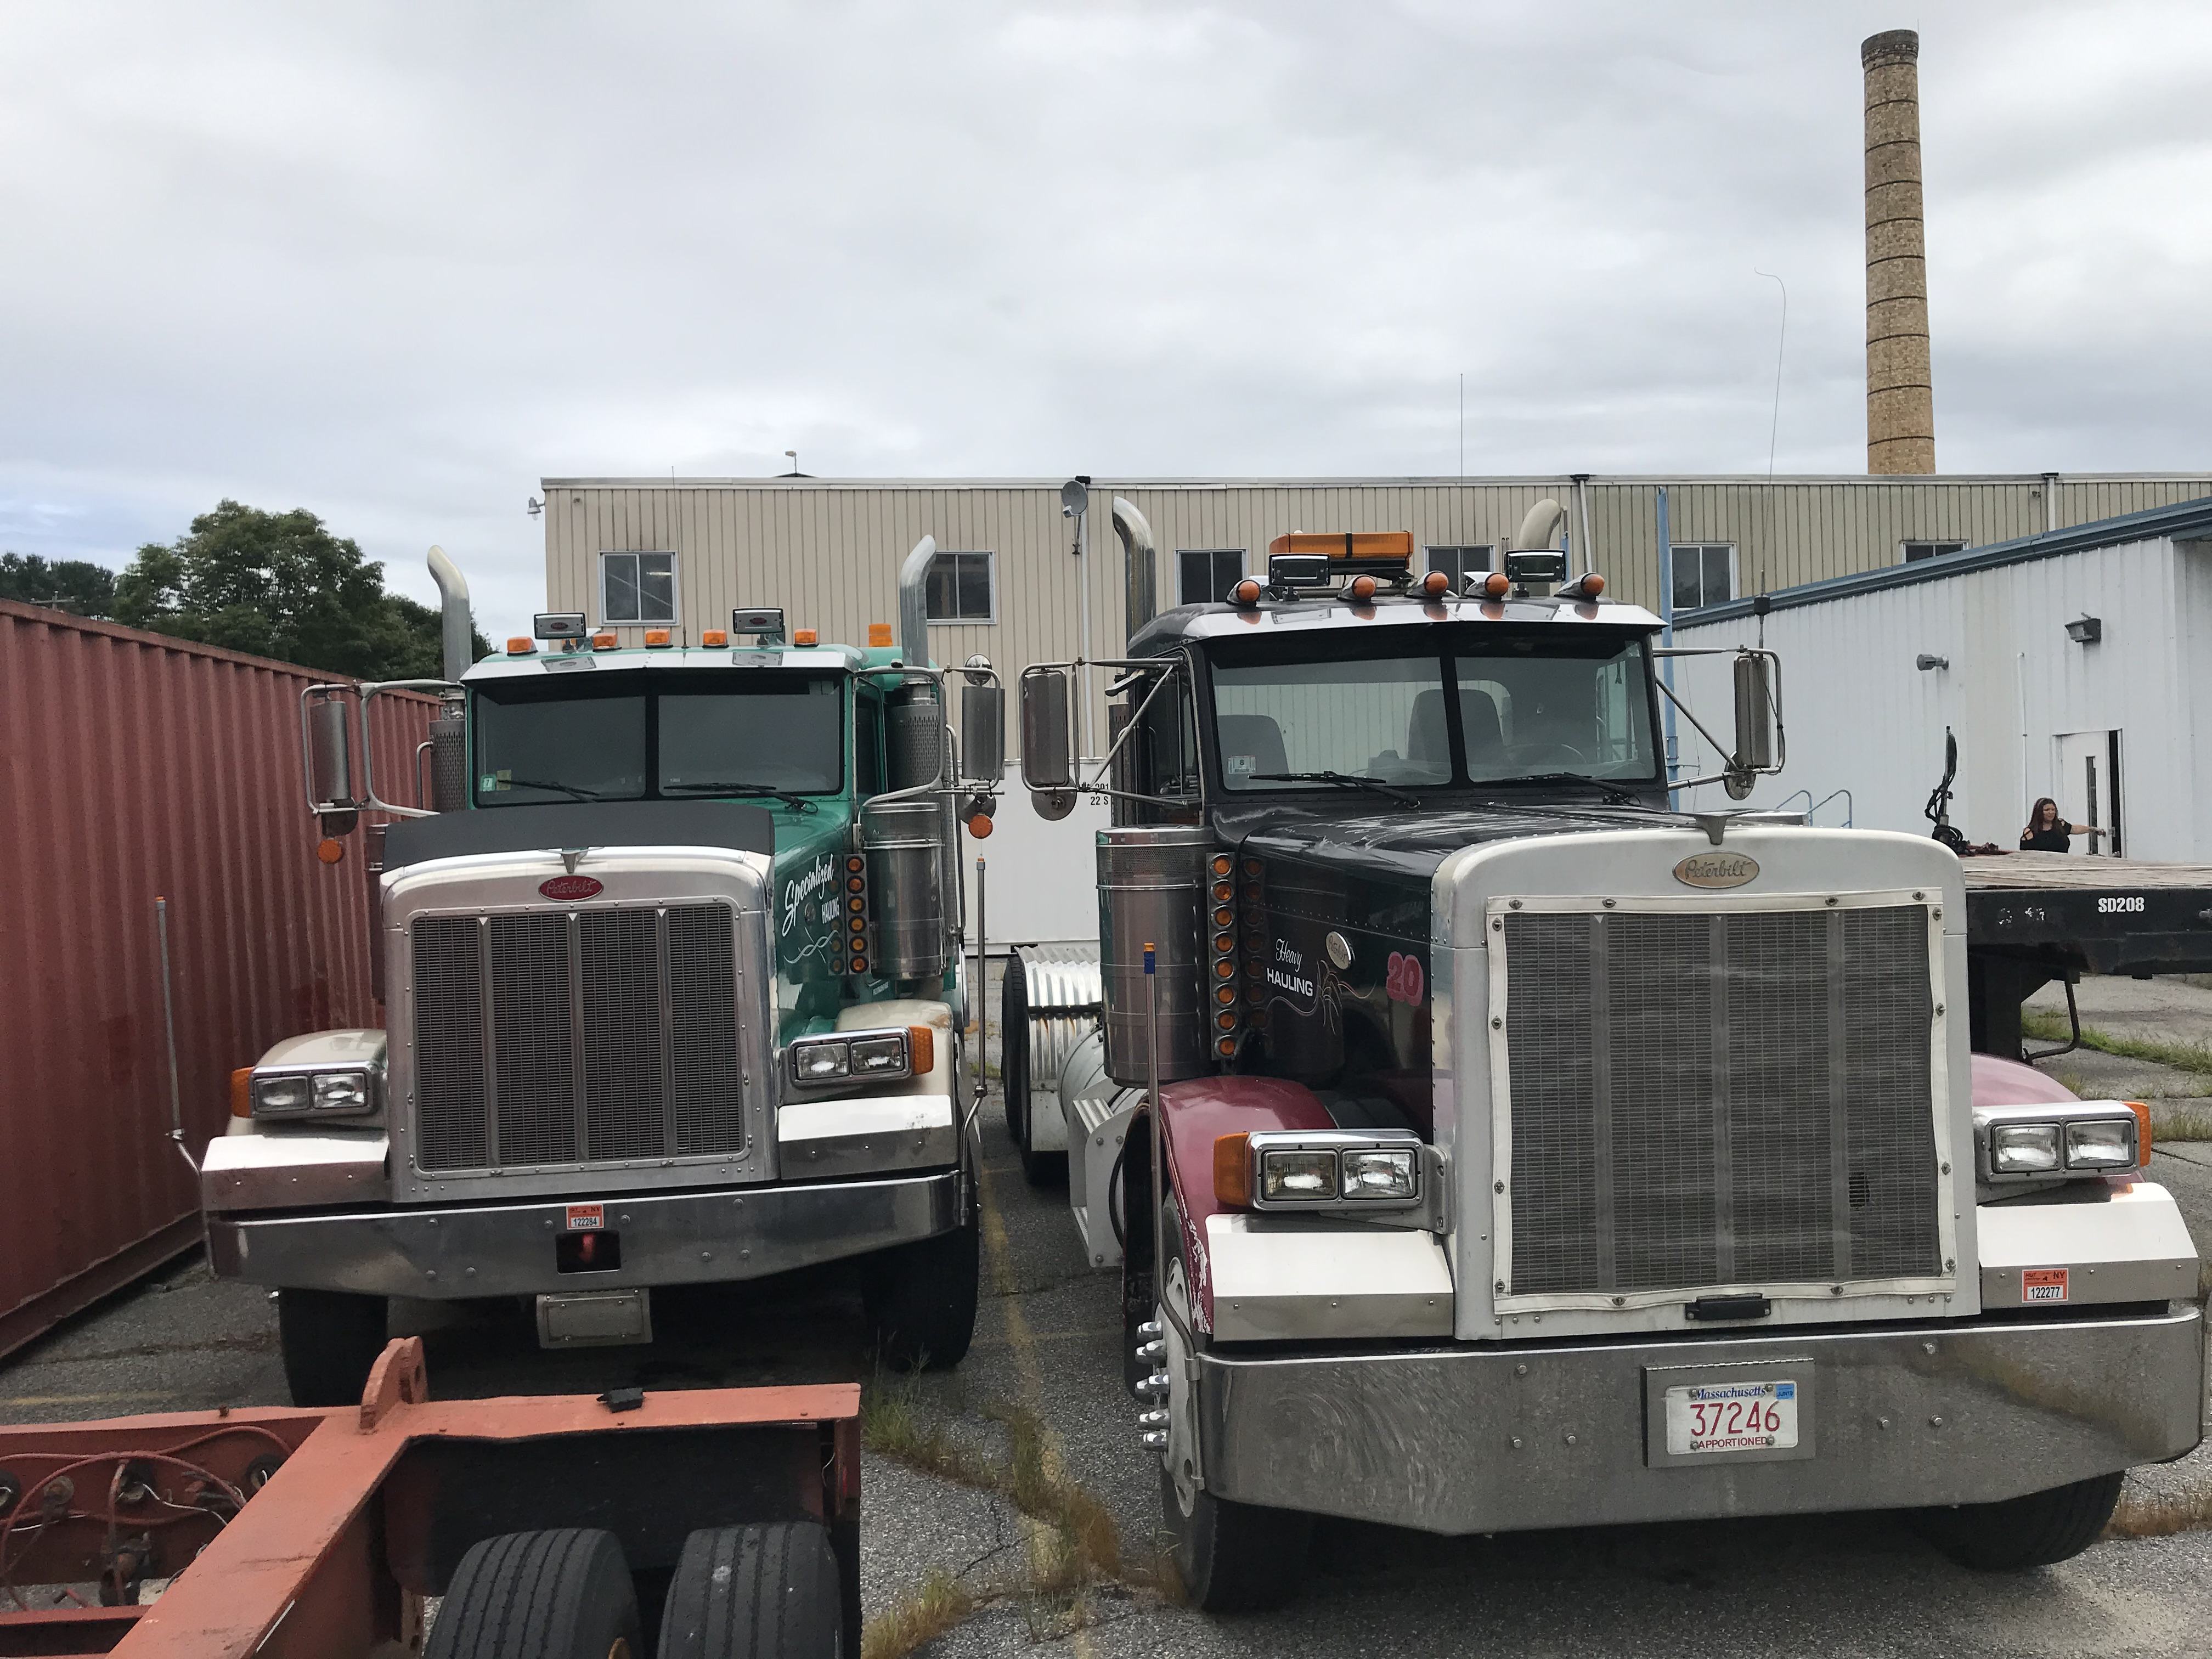 HEAVY EQUIPMENT - (2) PETERBILT TRACTORS - (3) 48' STEP DECK TRAILERS - FONTAINE 48' FLAT BED TRAILER, (6) 40' SHIPPING CONTAINERS - FORD